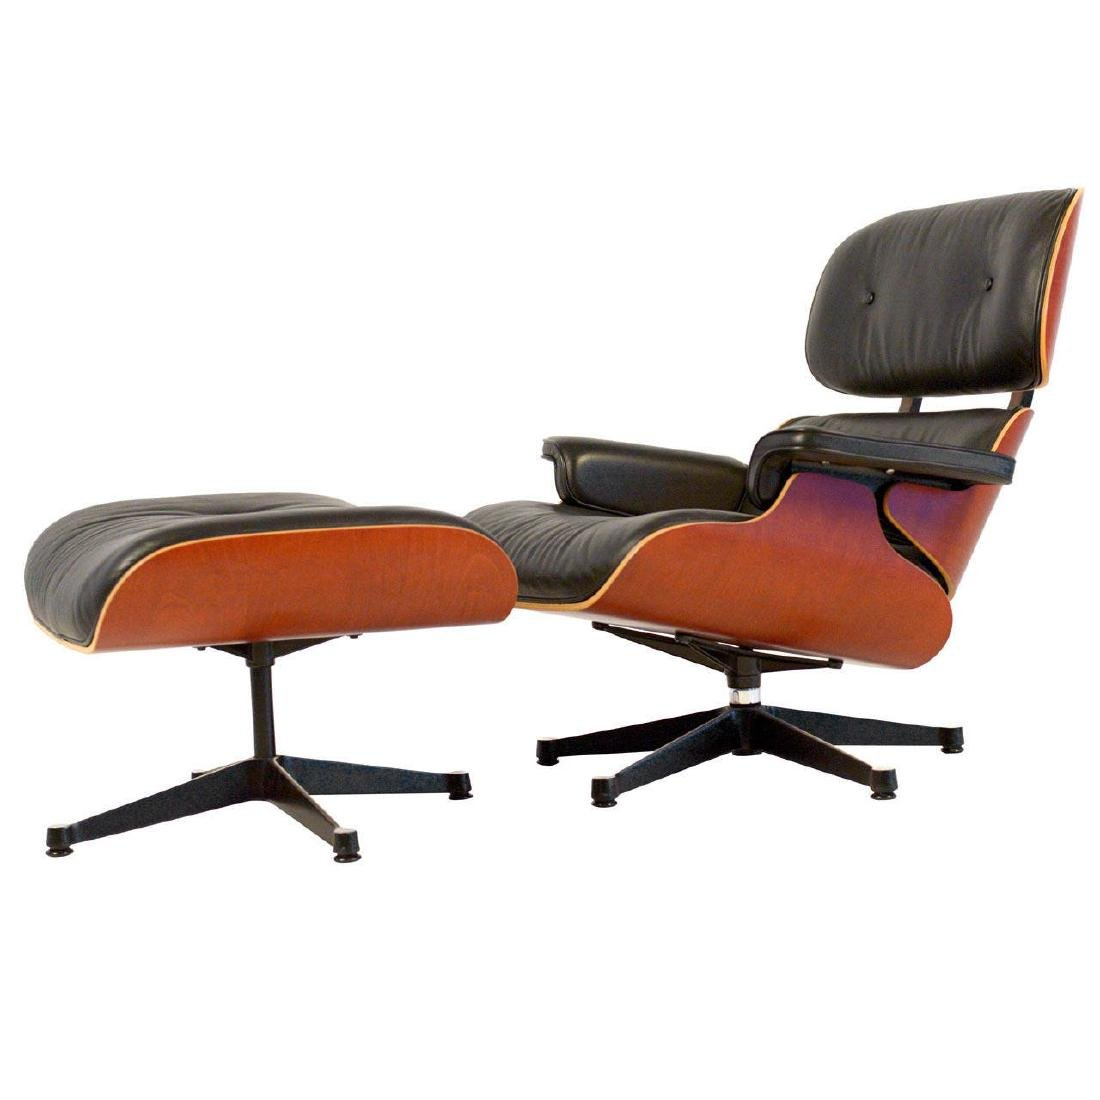 Charles Eames Lounge Chair & ottoman in Excellent